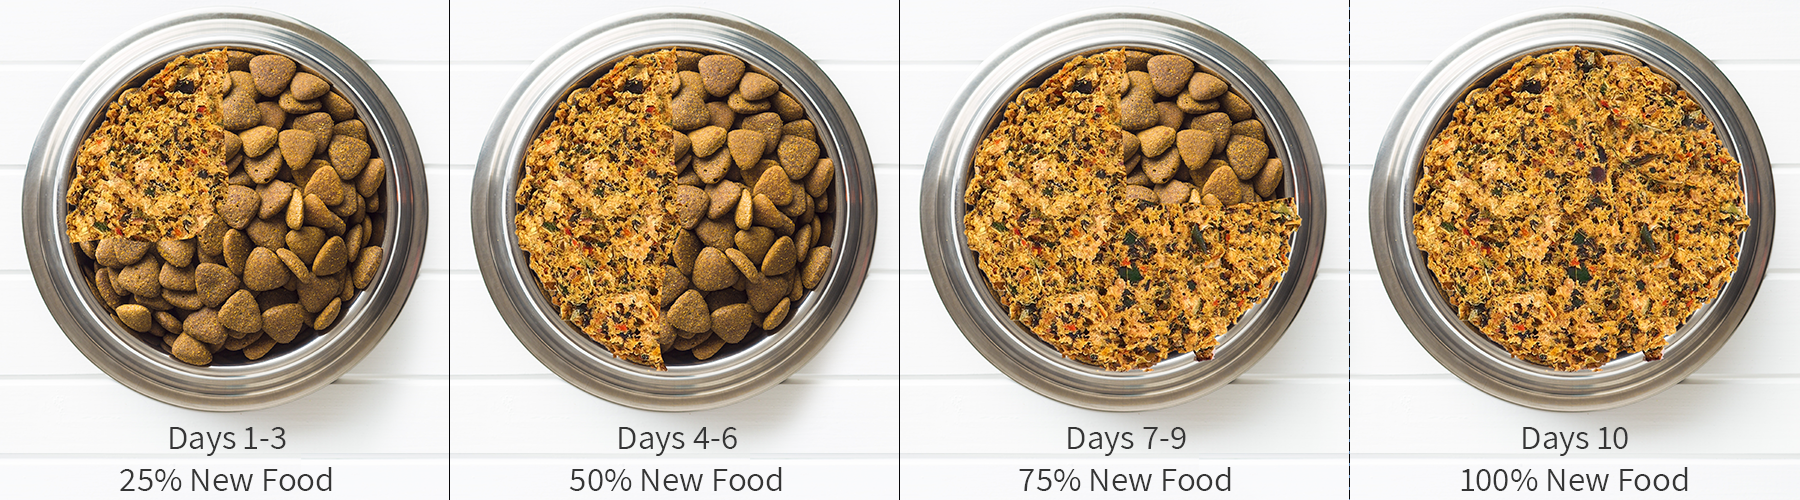 How to transition the dog food. There are four bowls - the first shows that on days 1-3 that it should be 25% new food and 75% their same food. On days 4-6 it should be 50% new food. On days 7-9 it should be 75% new food. Day 10 100% new food.